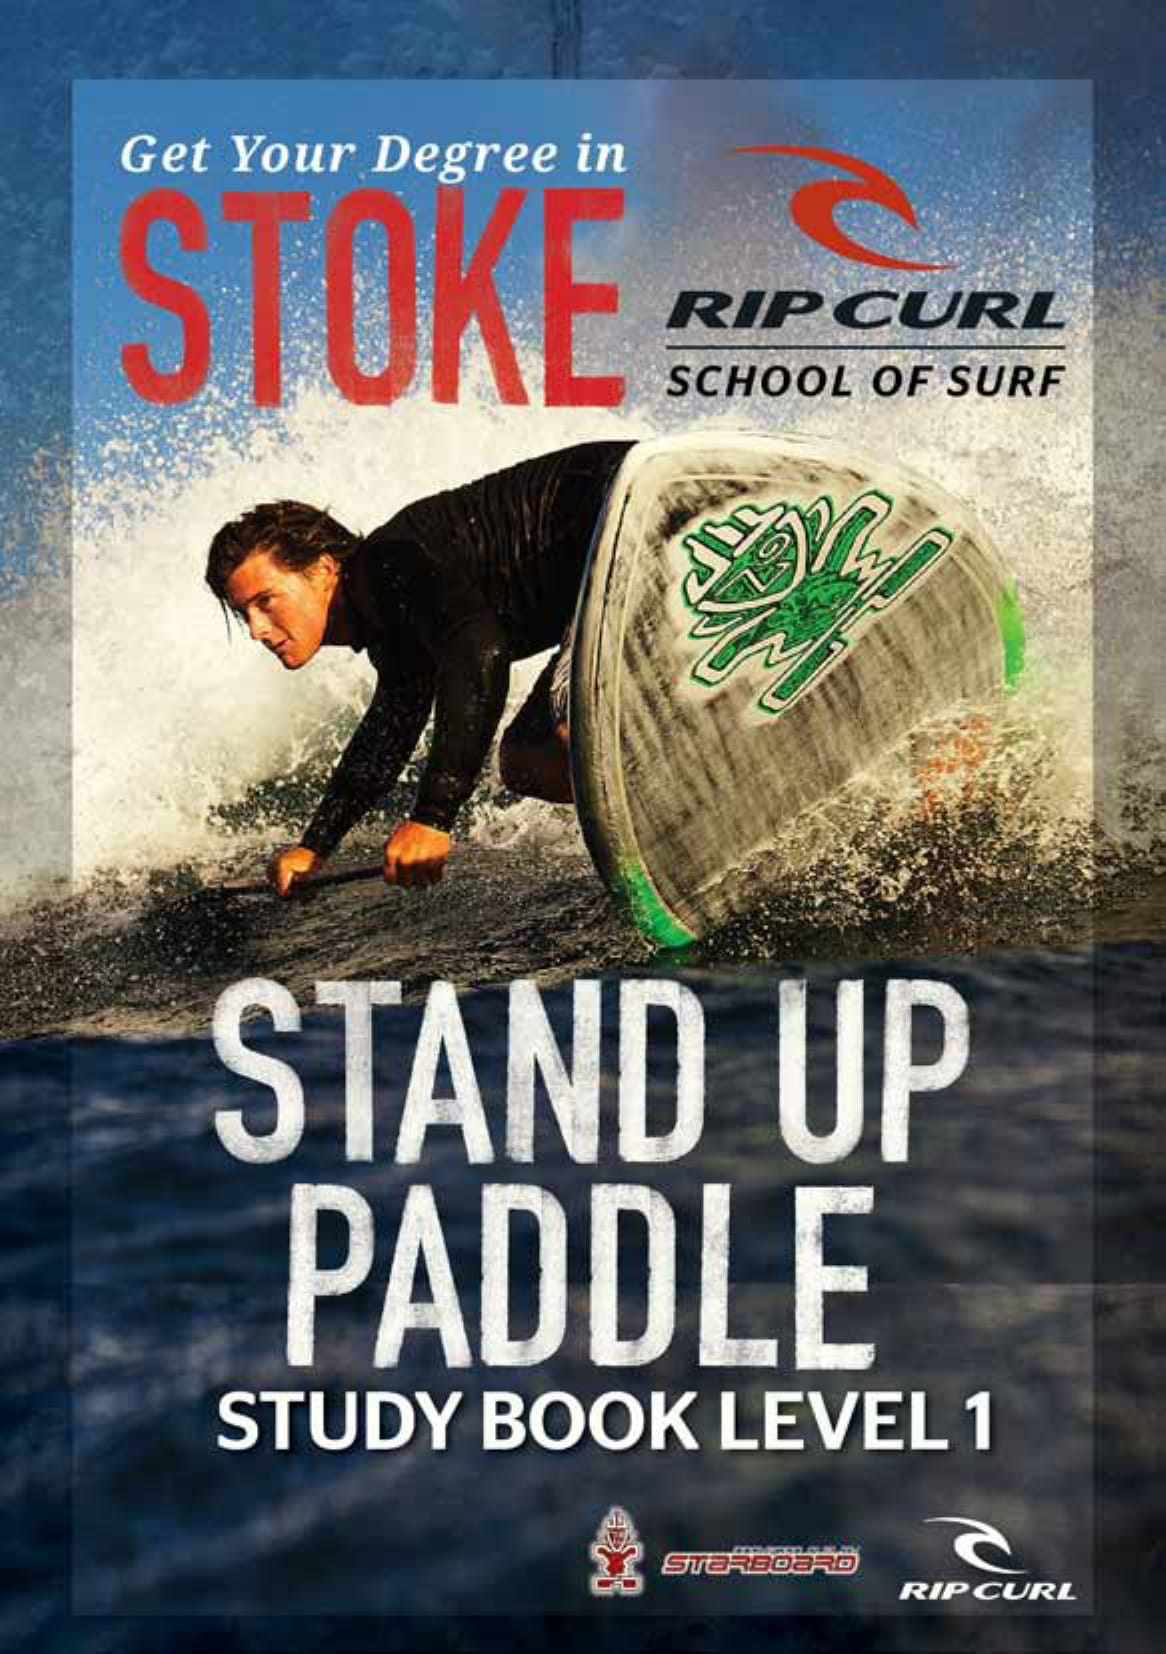 56aeeb33c1 Stand Up Paddle Level 1 - Rip Curl School of Surf